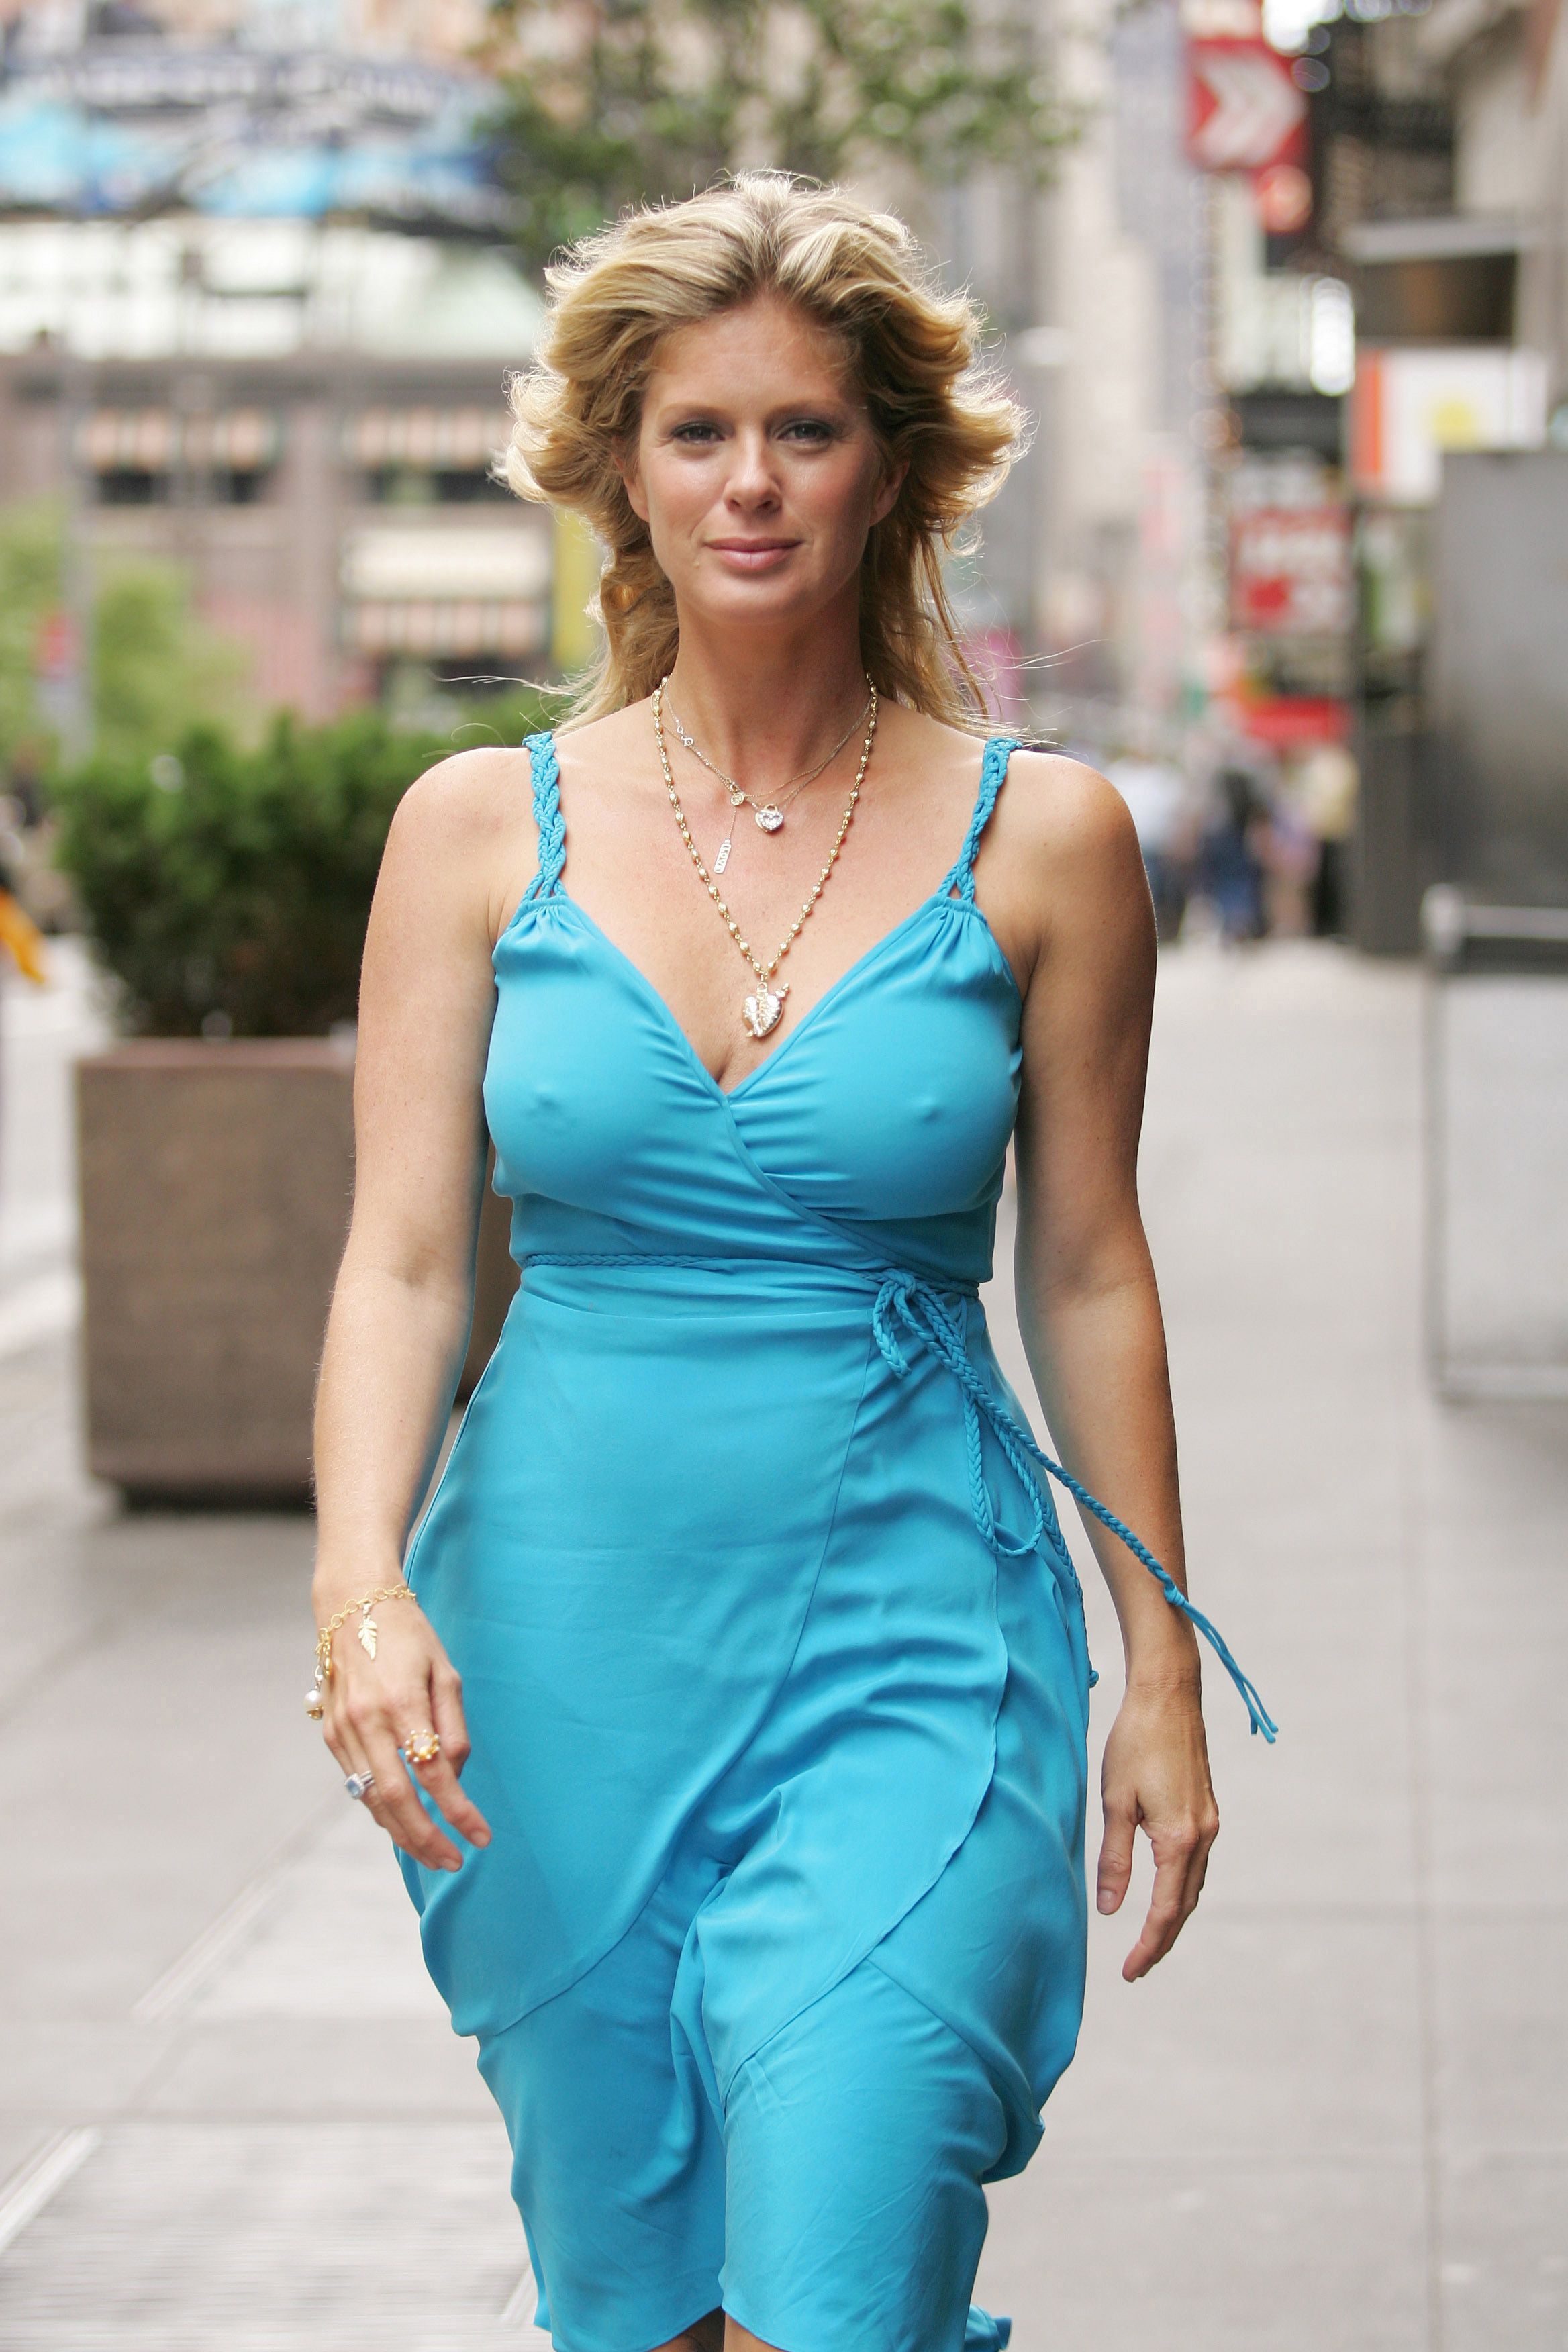 Cleavage Rachel Hunter nude photos 2019